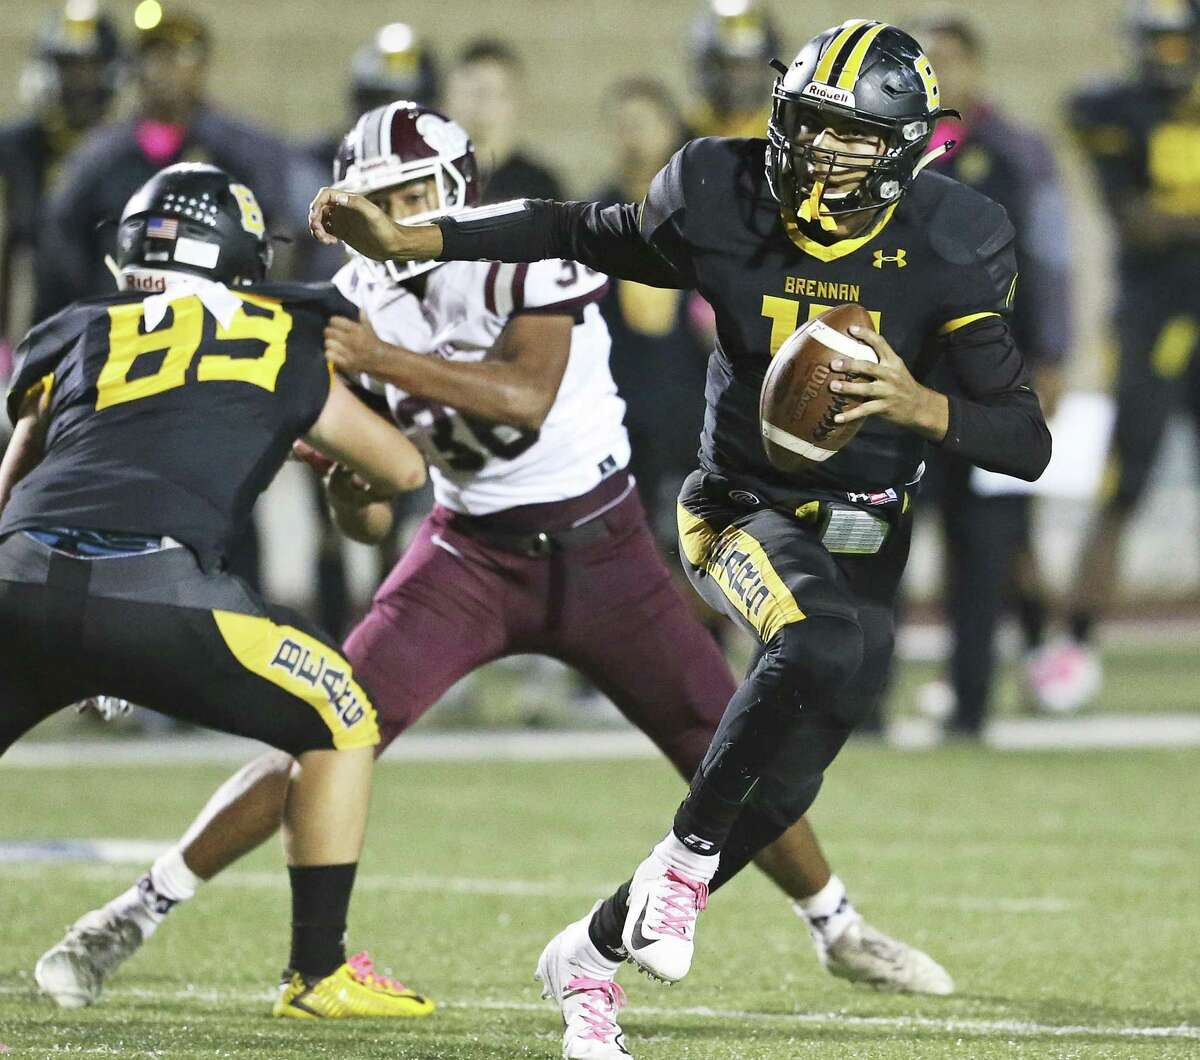 Bears quarterback Jordan Flores escapes the backfield to his left as Brennan plays Marshall at Farris Stadium on October 11, 2018.